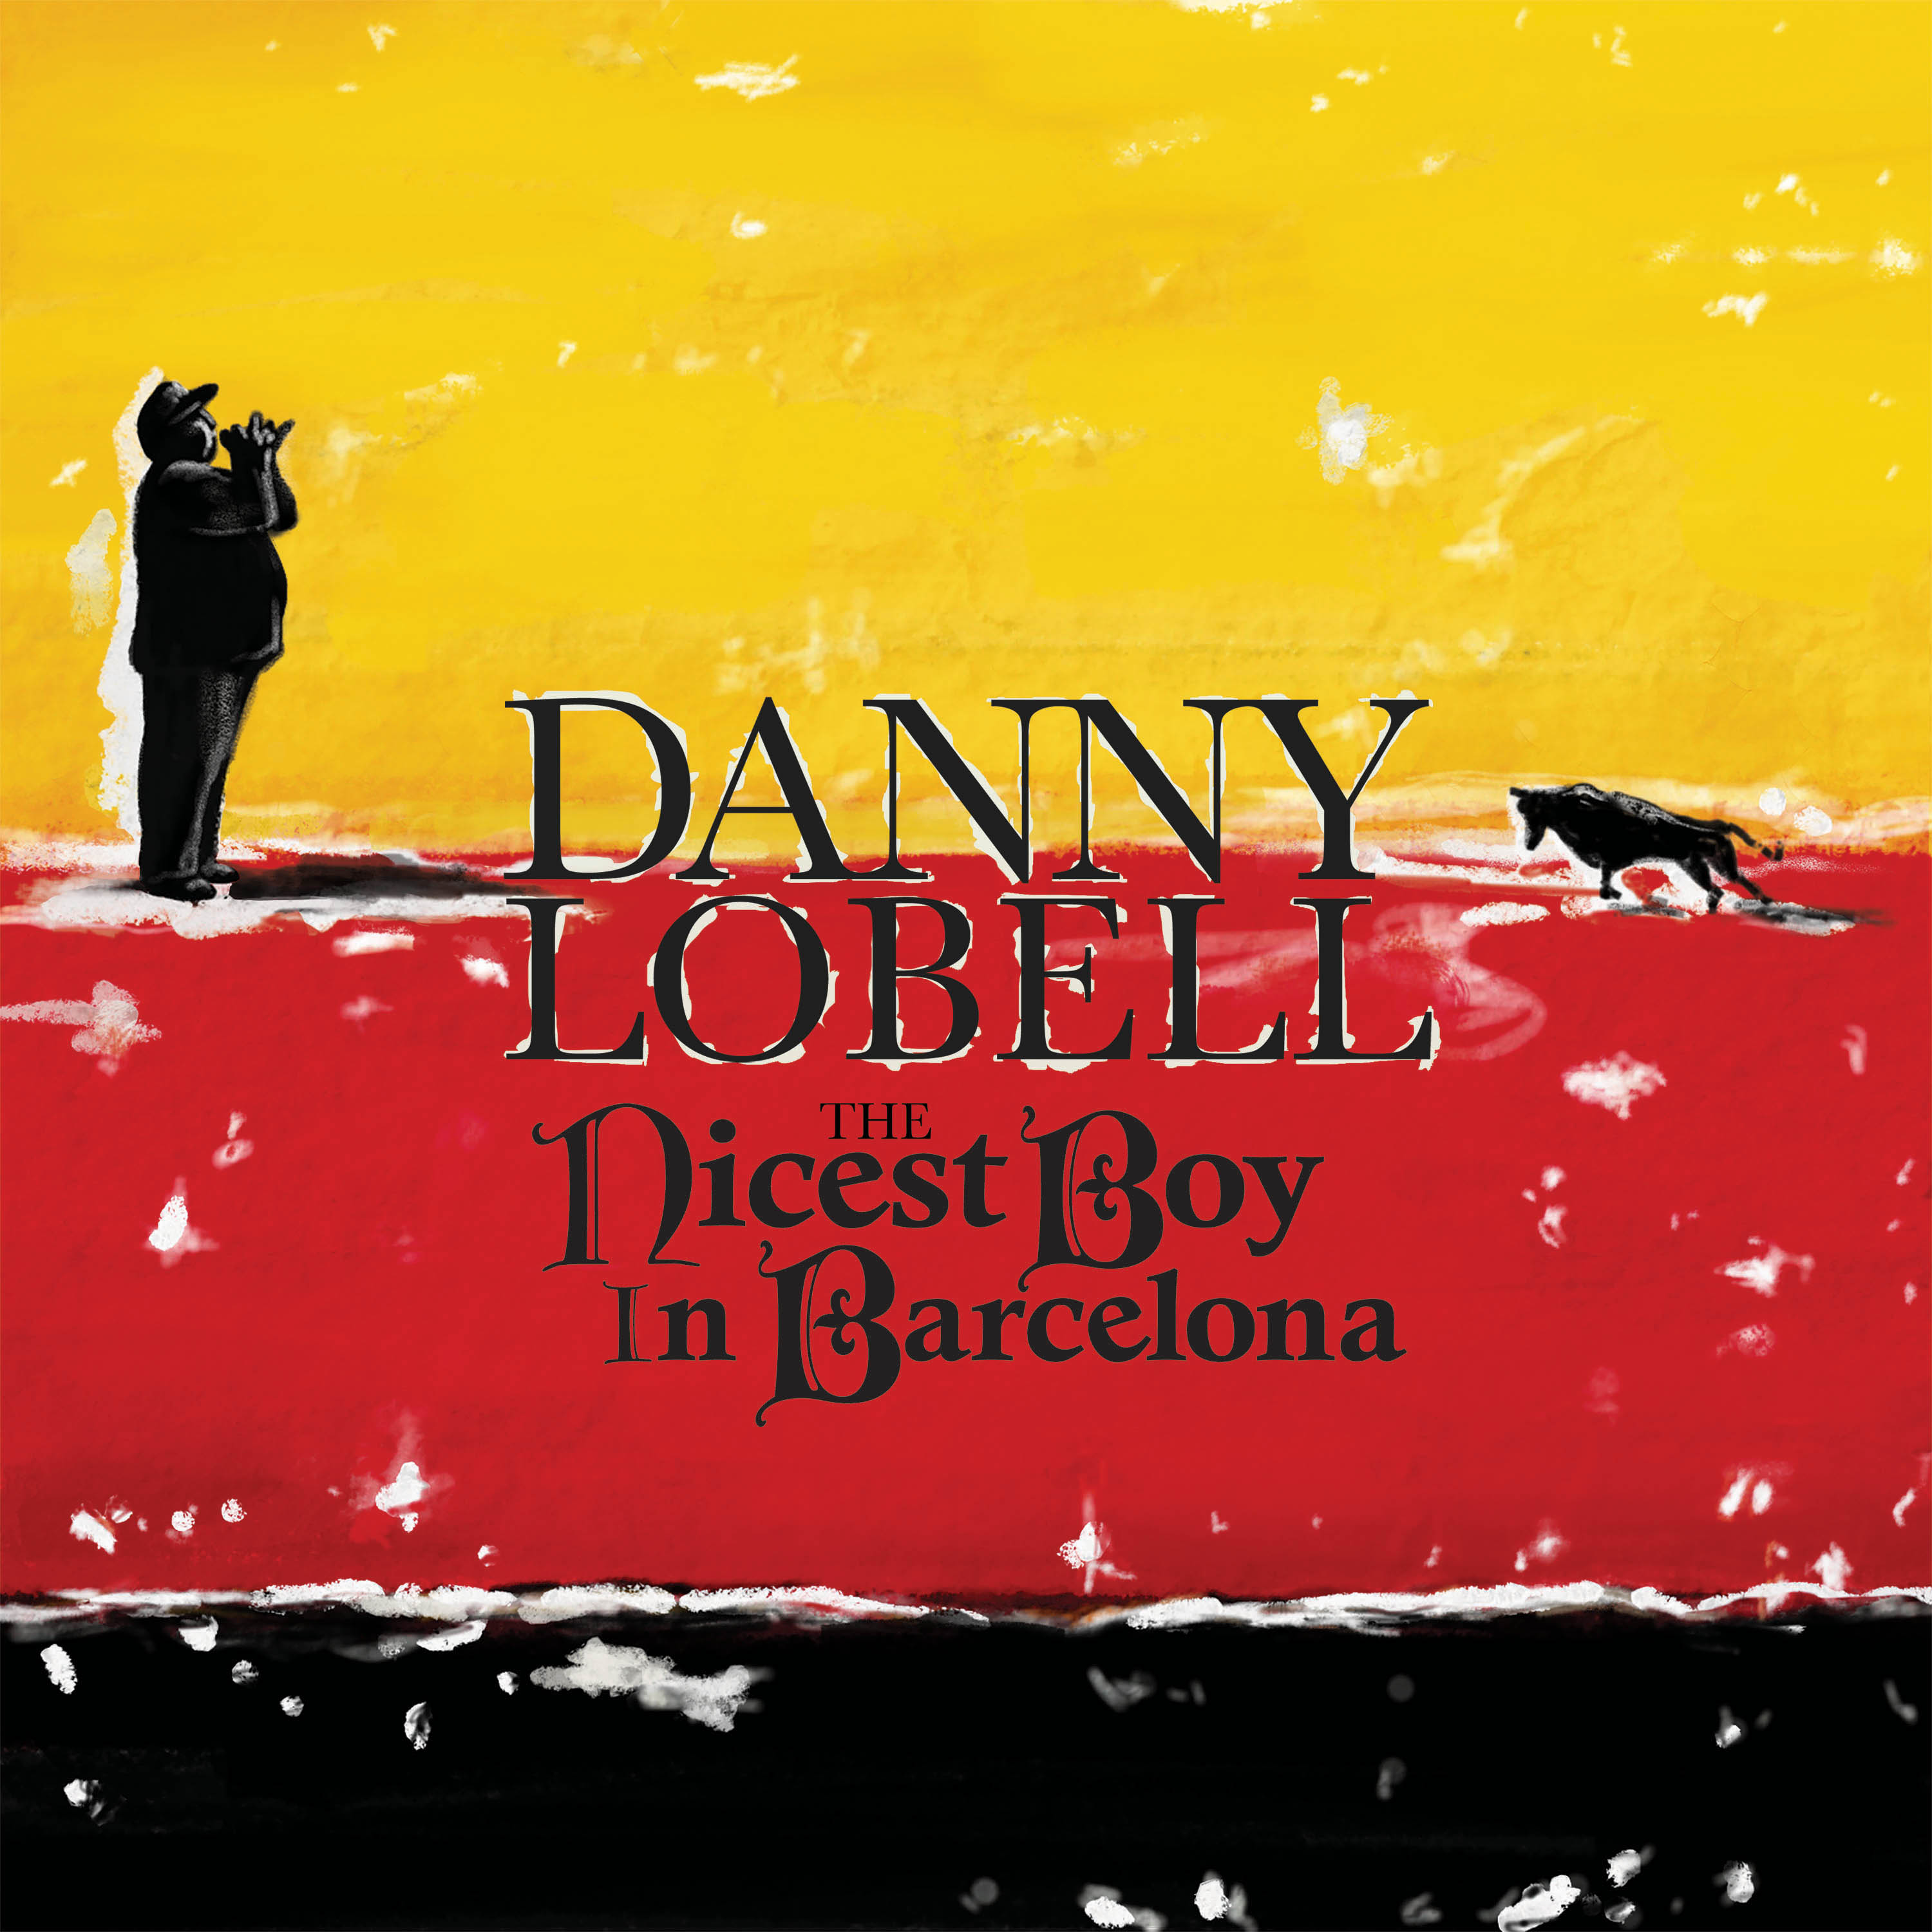 COMEDY NEWS: Danny Lobell's Latest The Happiest Boy in Barcelona Out Today from Stand Up! Records